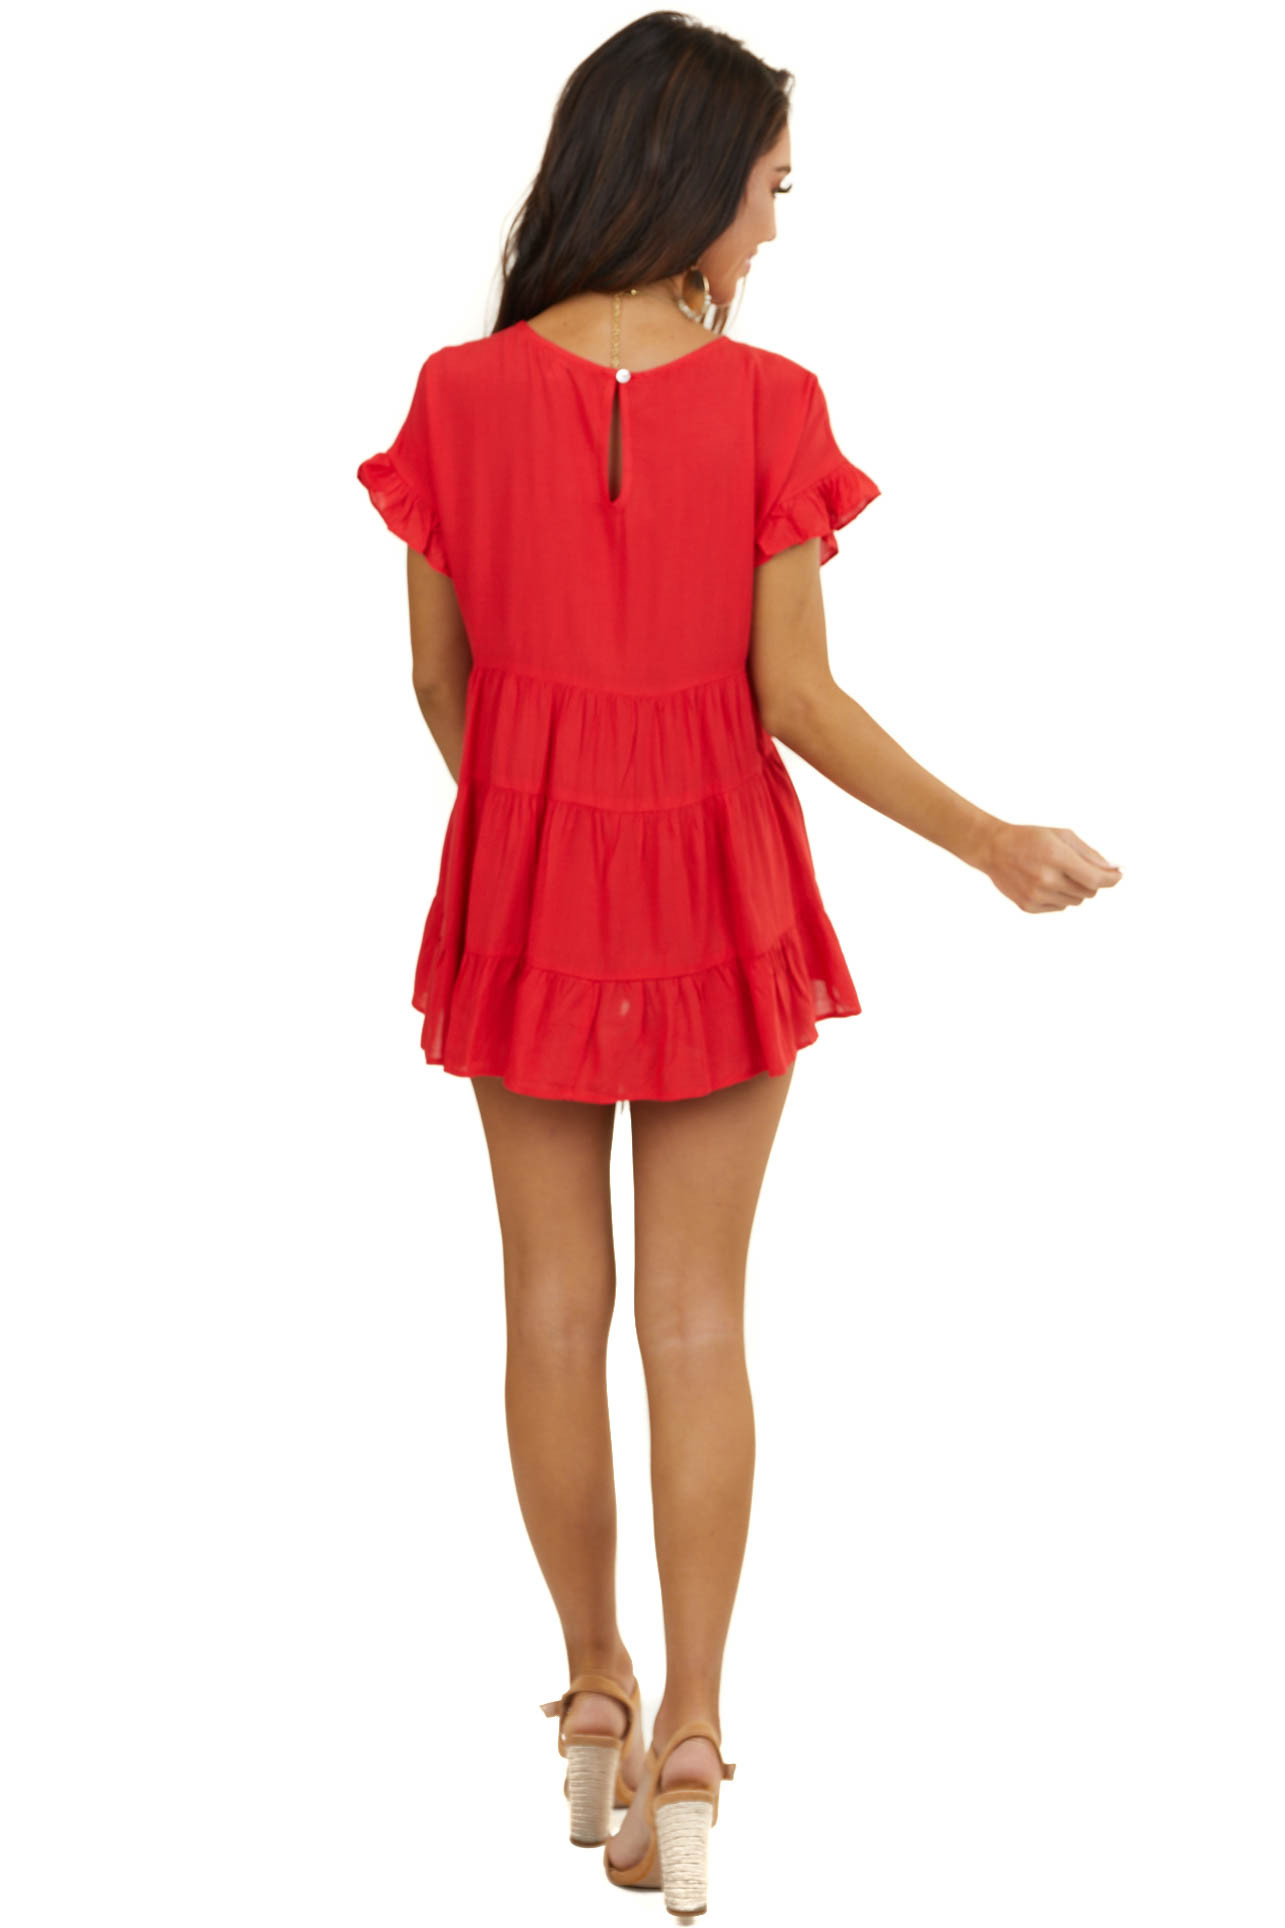 Lipstick Red Babydoll Woven Top with Short Ruffled Sleeves